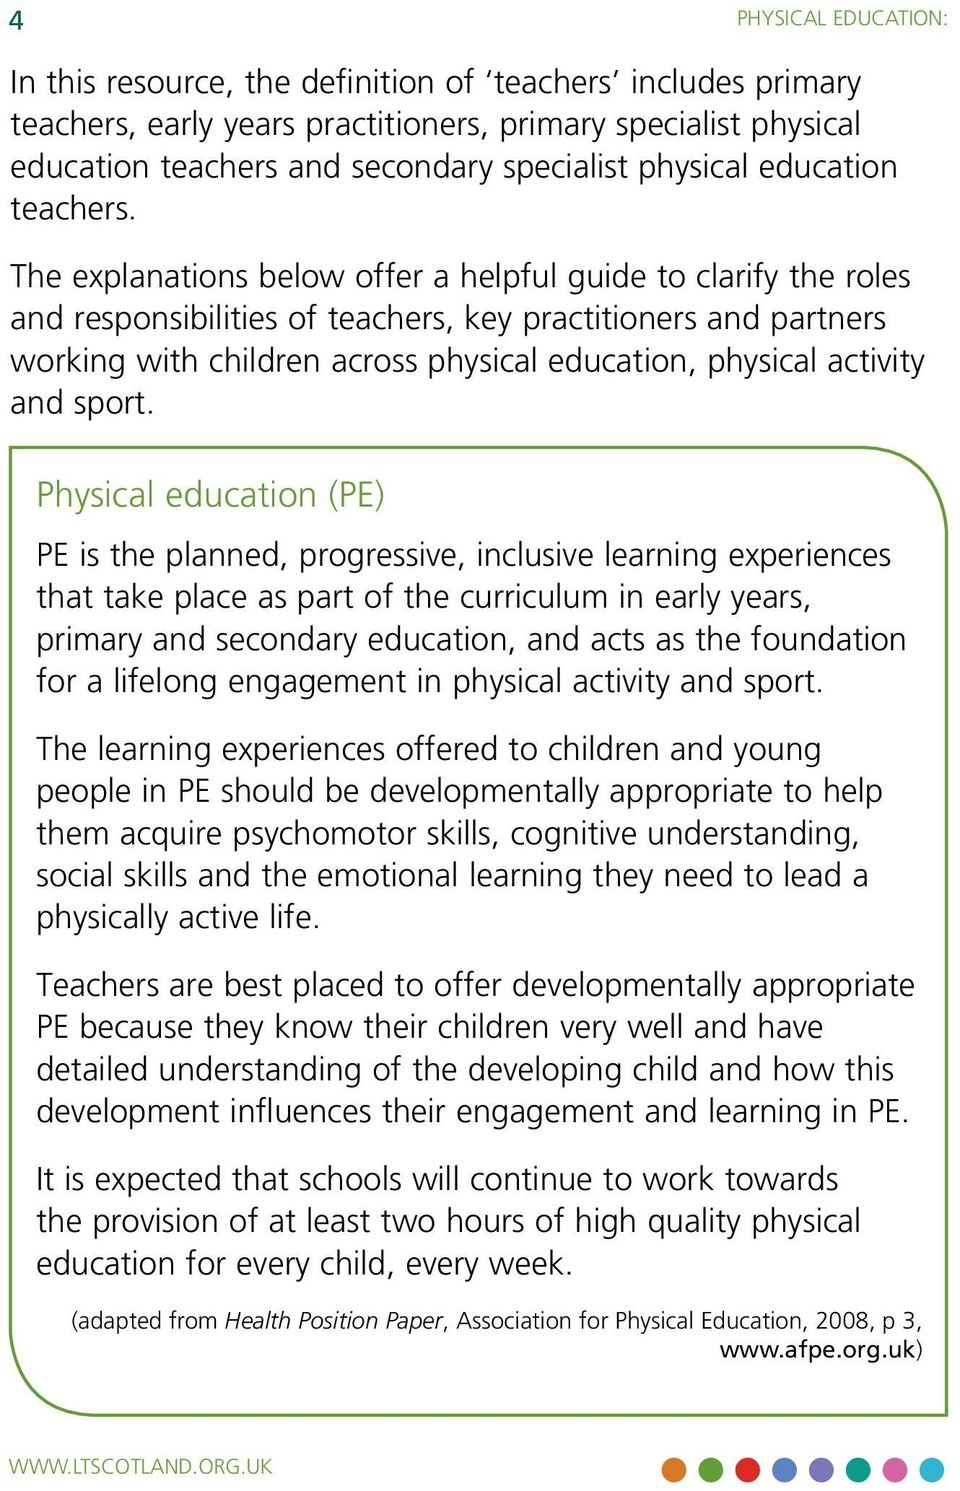 The explanations below offer a helpful guide to clarify the roles and responsibilities of teachers, key practitioners and partners working with children across physical education, physical activity